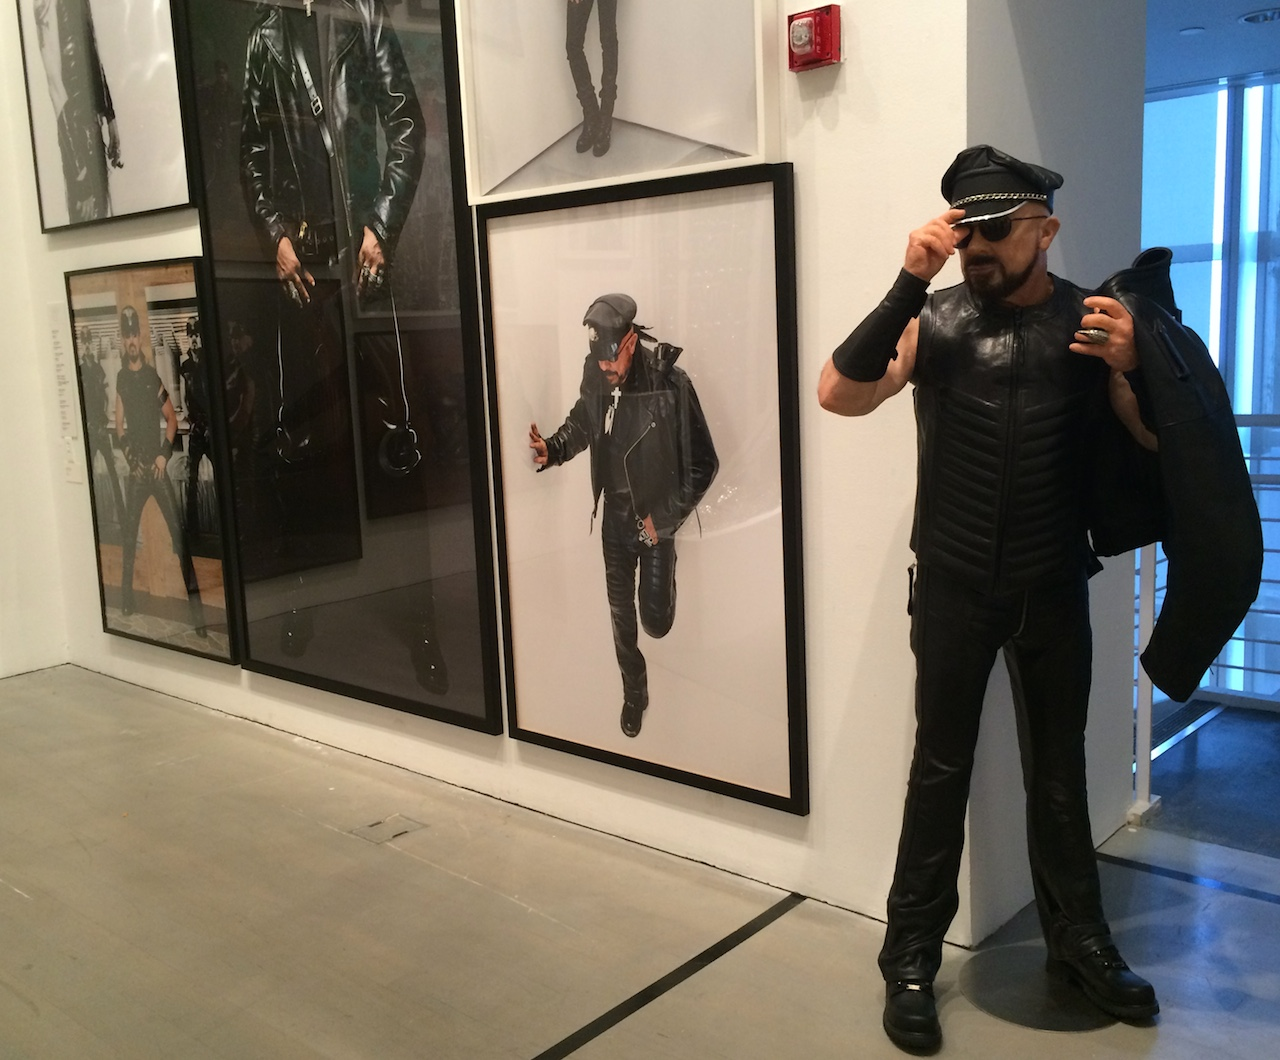 Installation view of 'One Way: Peter Marino' at the Bass Museum of Art